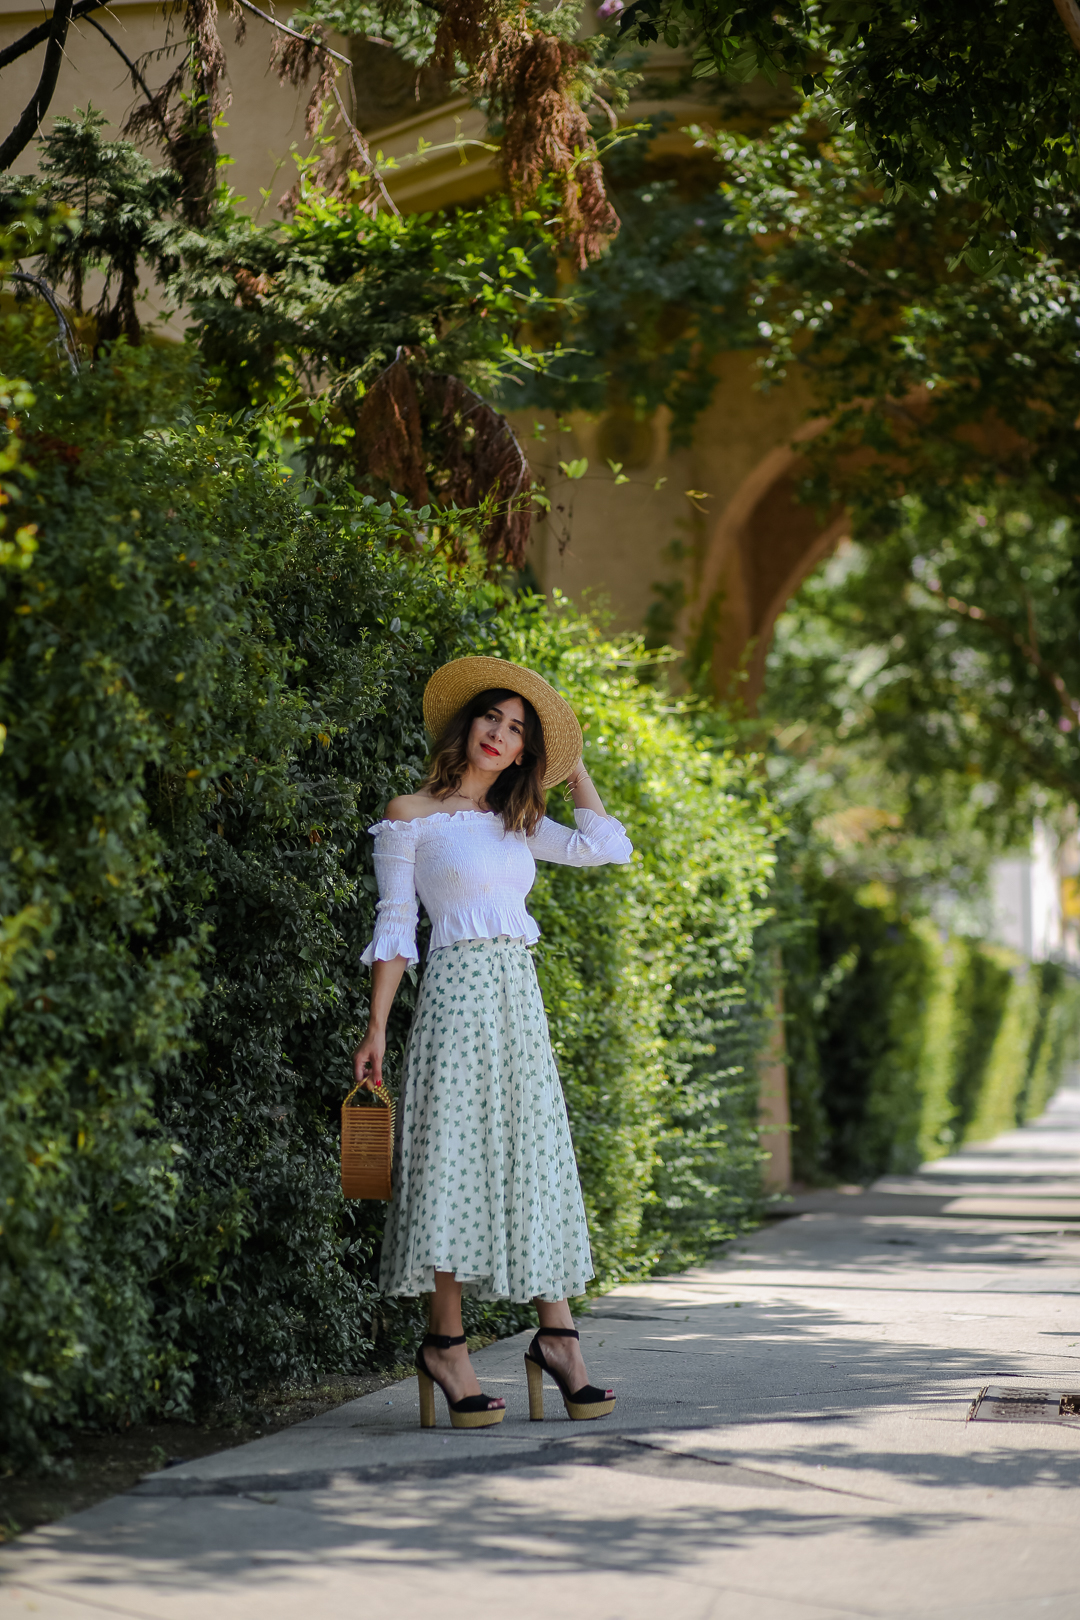 off the shoulder top outfit ideas for summer